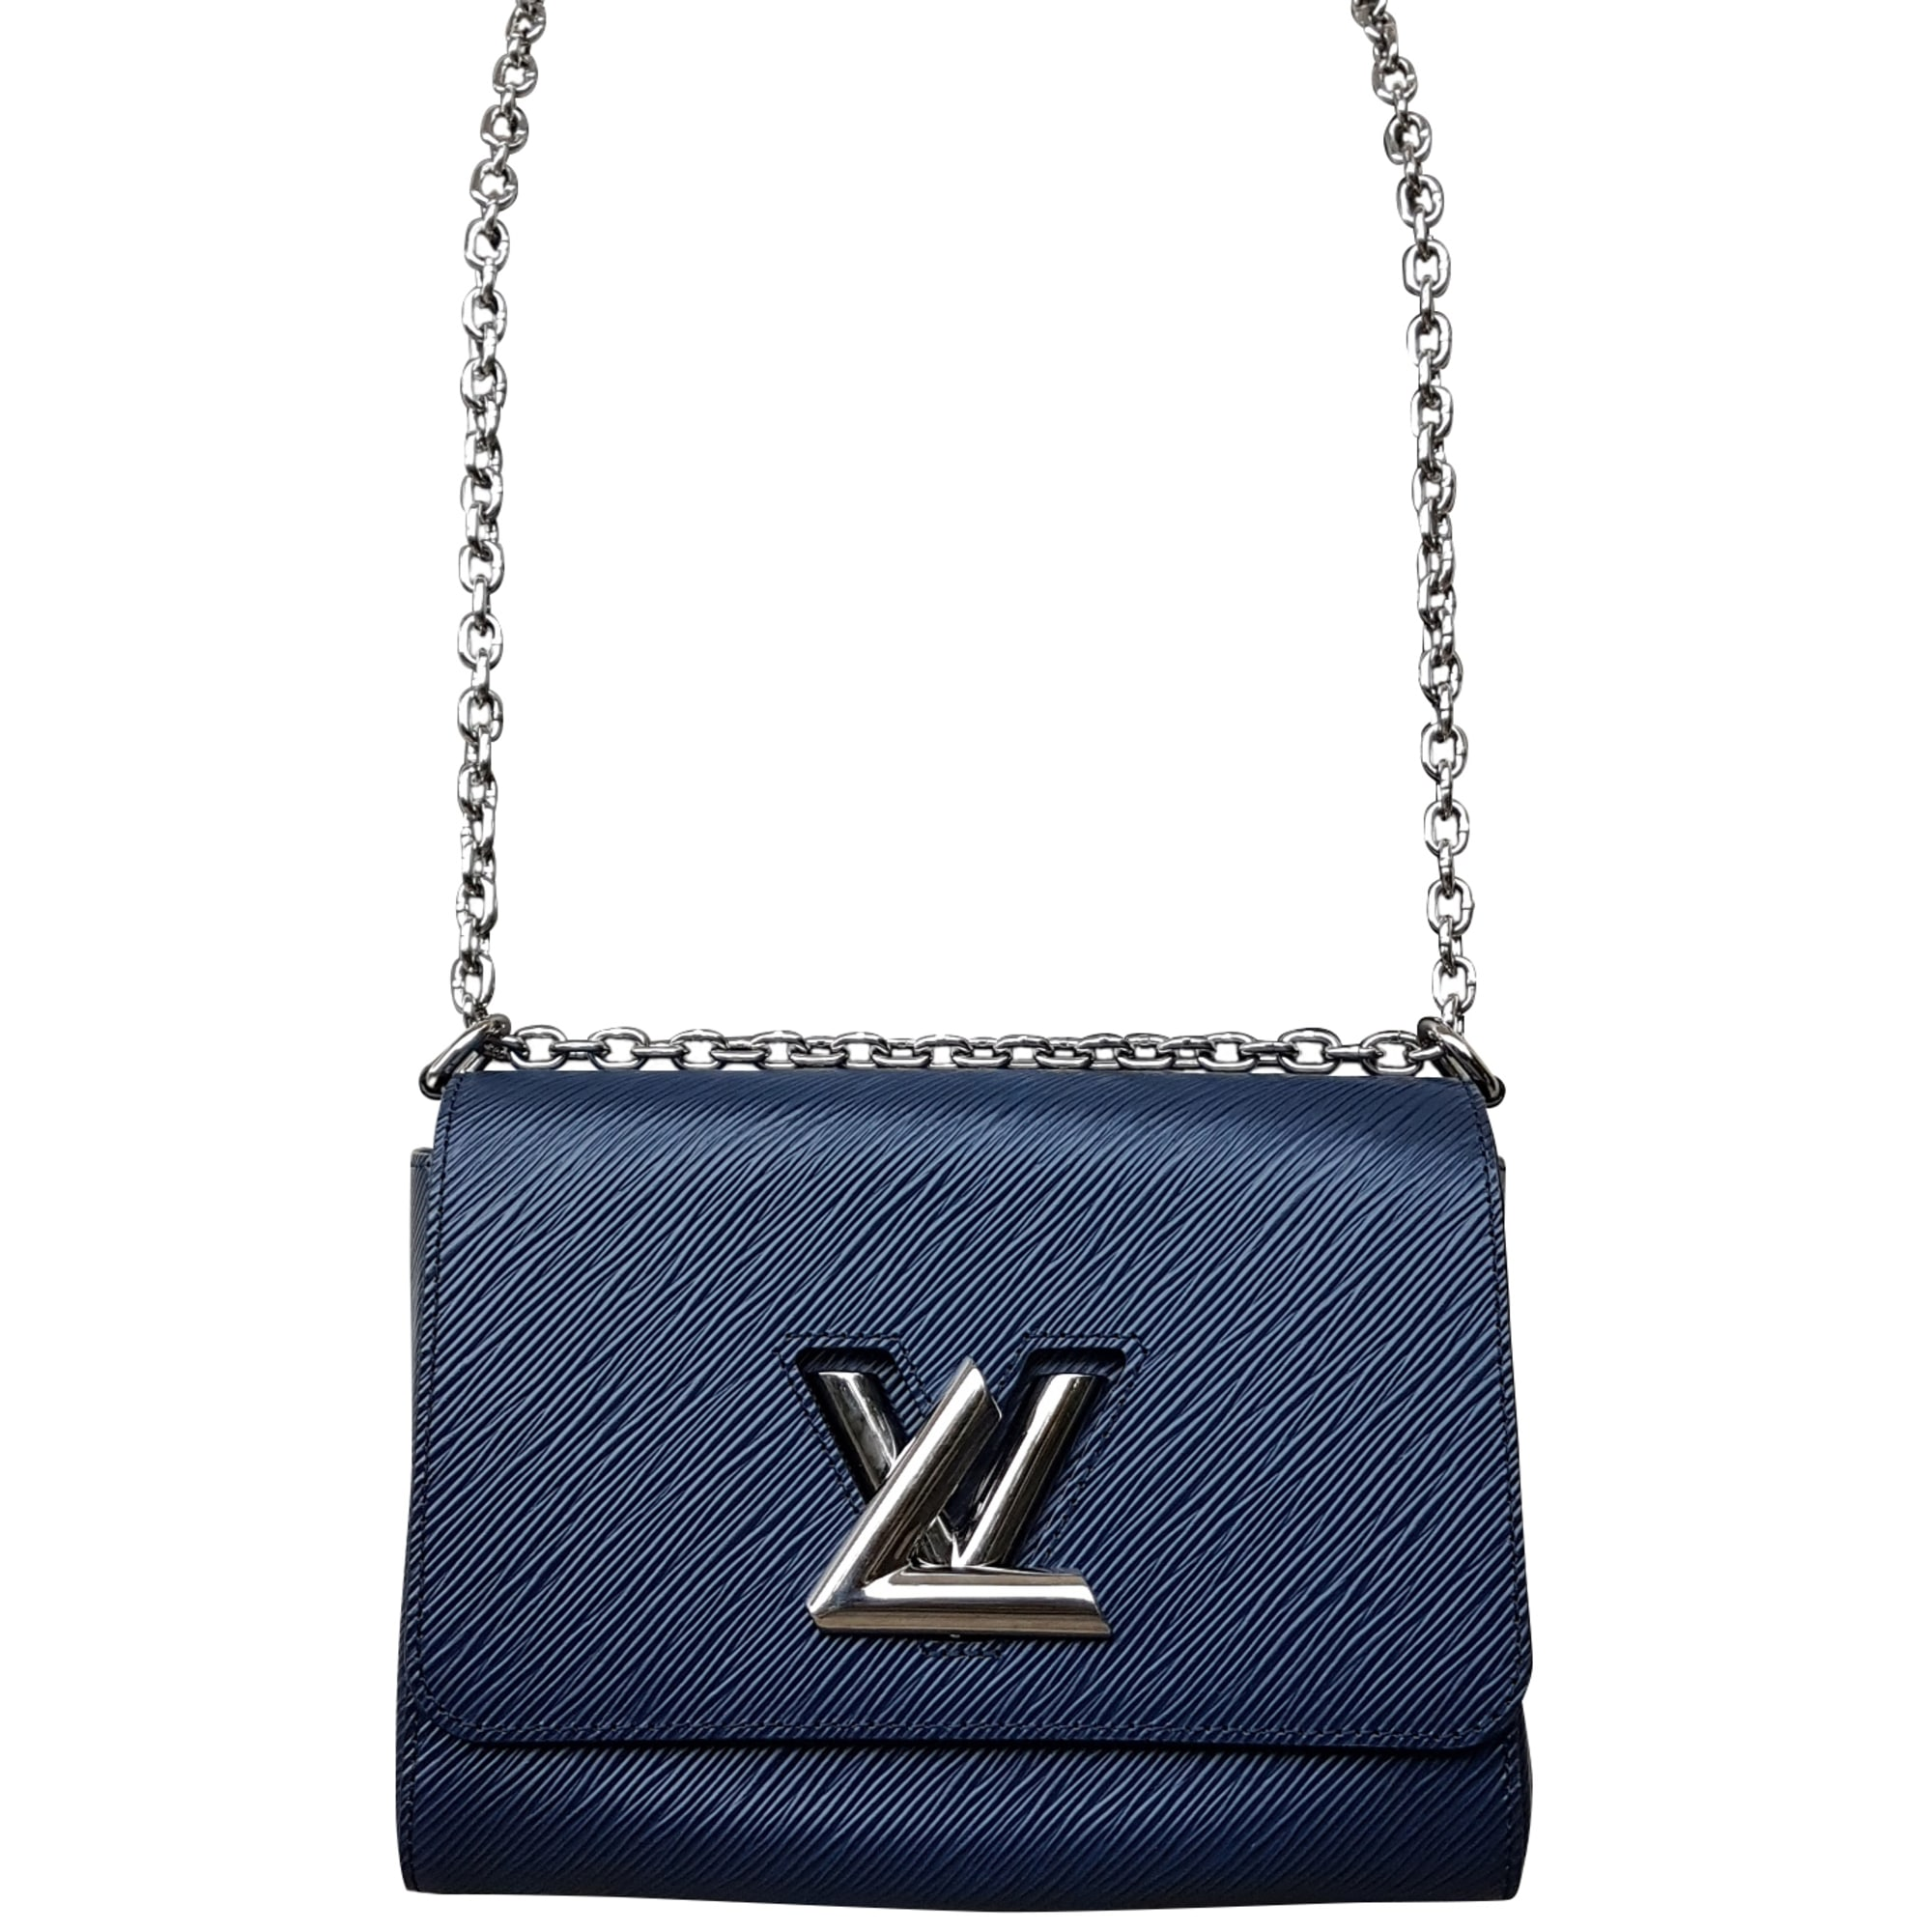 3757c46076f Sac à main en cuir LOUIS VUITTON twist bleu vendu par Ricar - 6757558